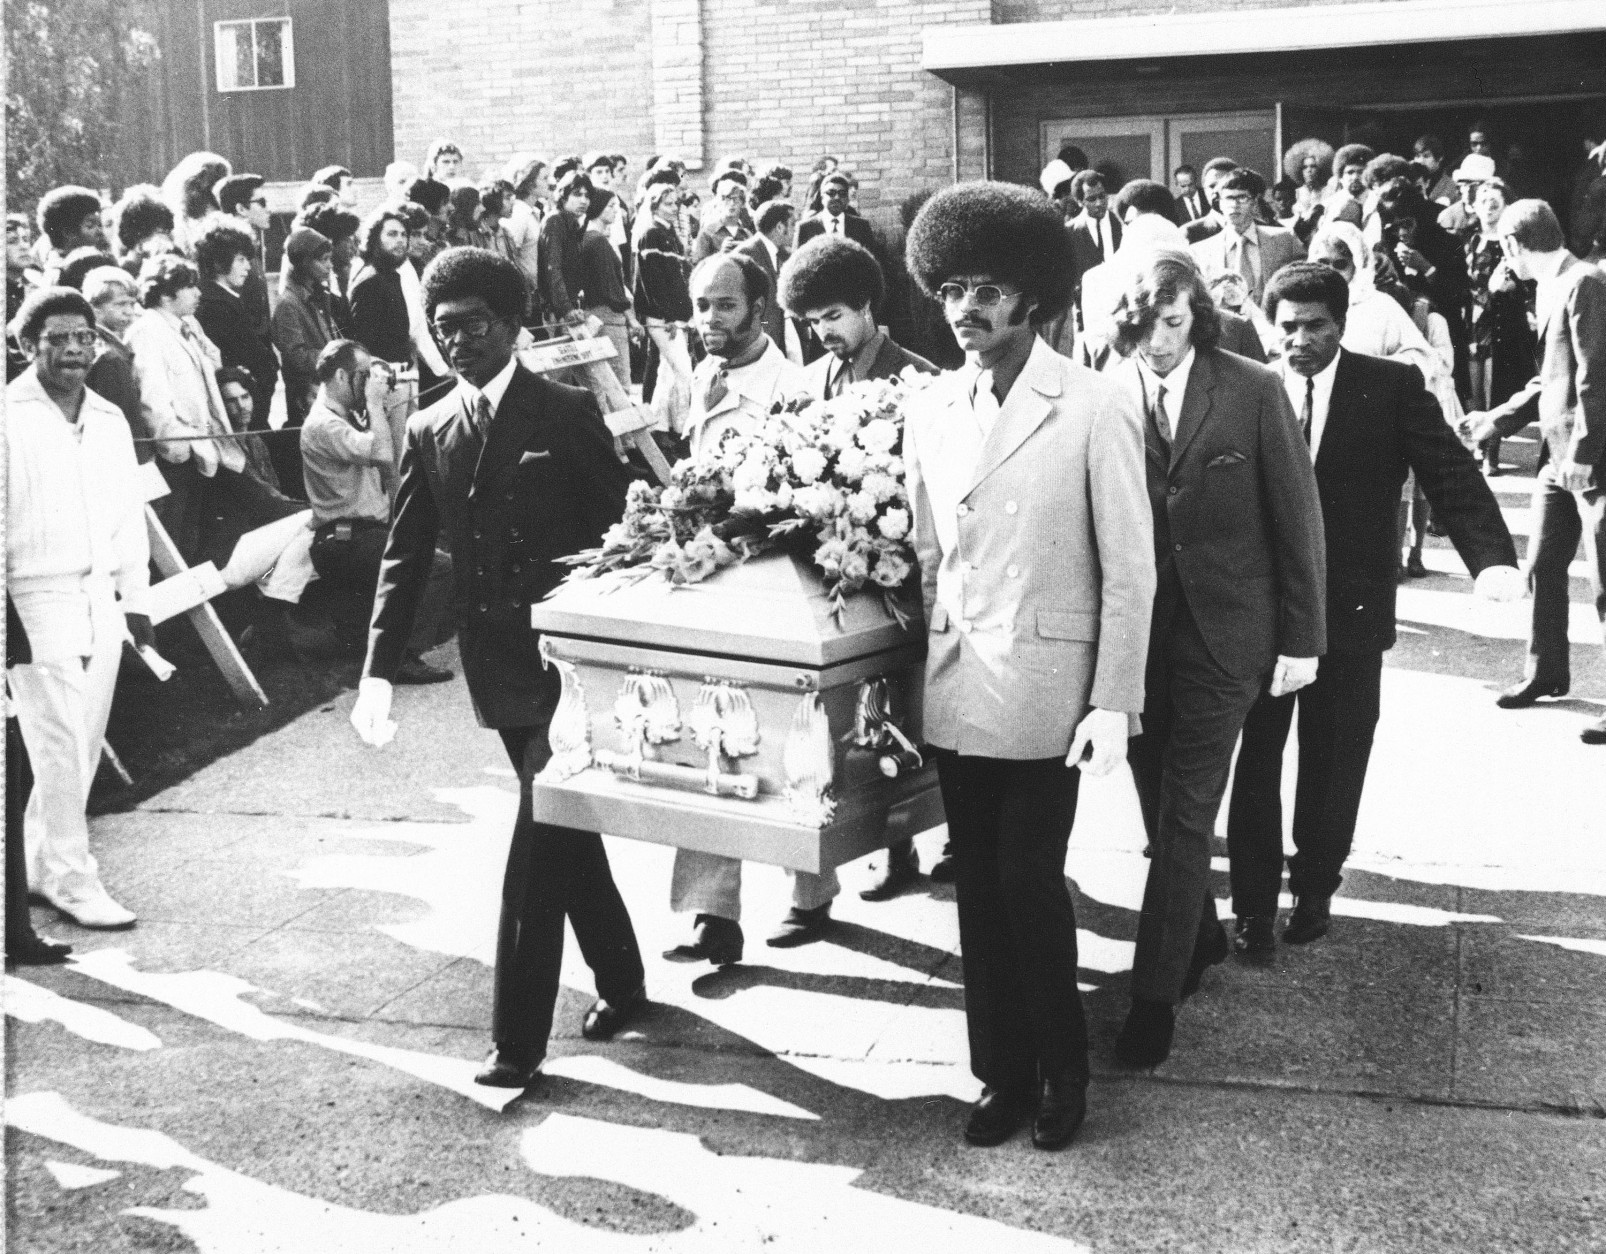 On this date in 1970, rock star Jimi Hendrix died in London at age 27. Here, friends of Hendrix carry his coffin from the church after funeral services, Oct. 1, 1970 in Seattle. (AP Photo/Barry Sweet)